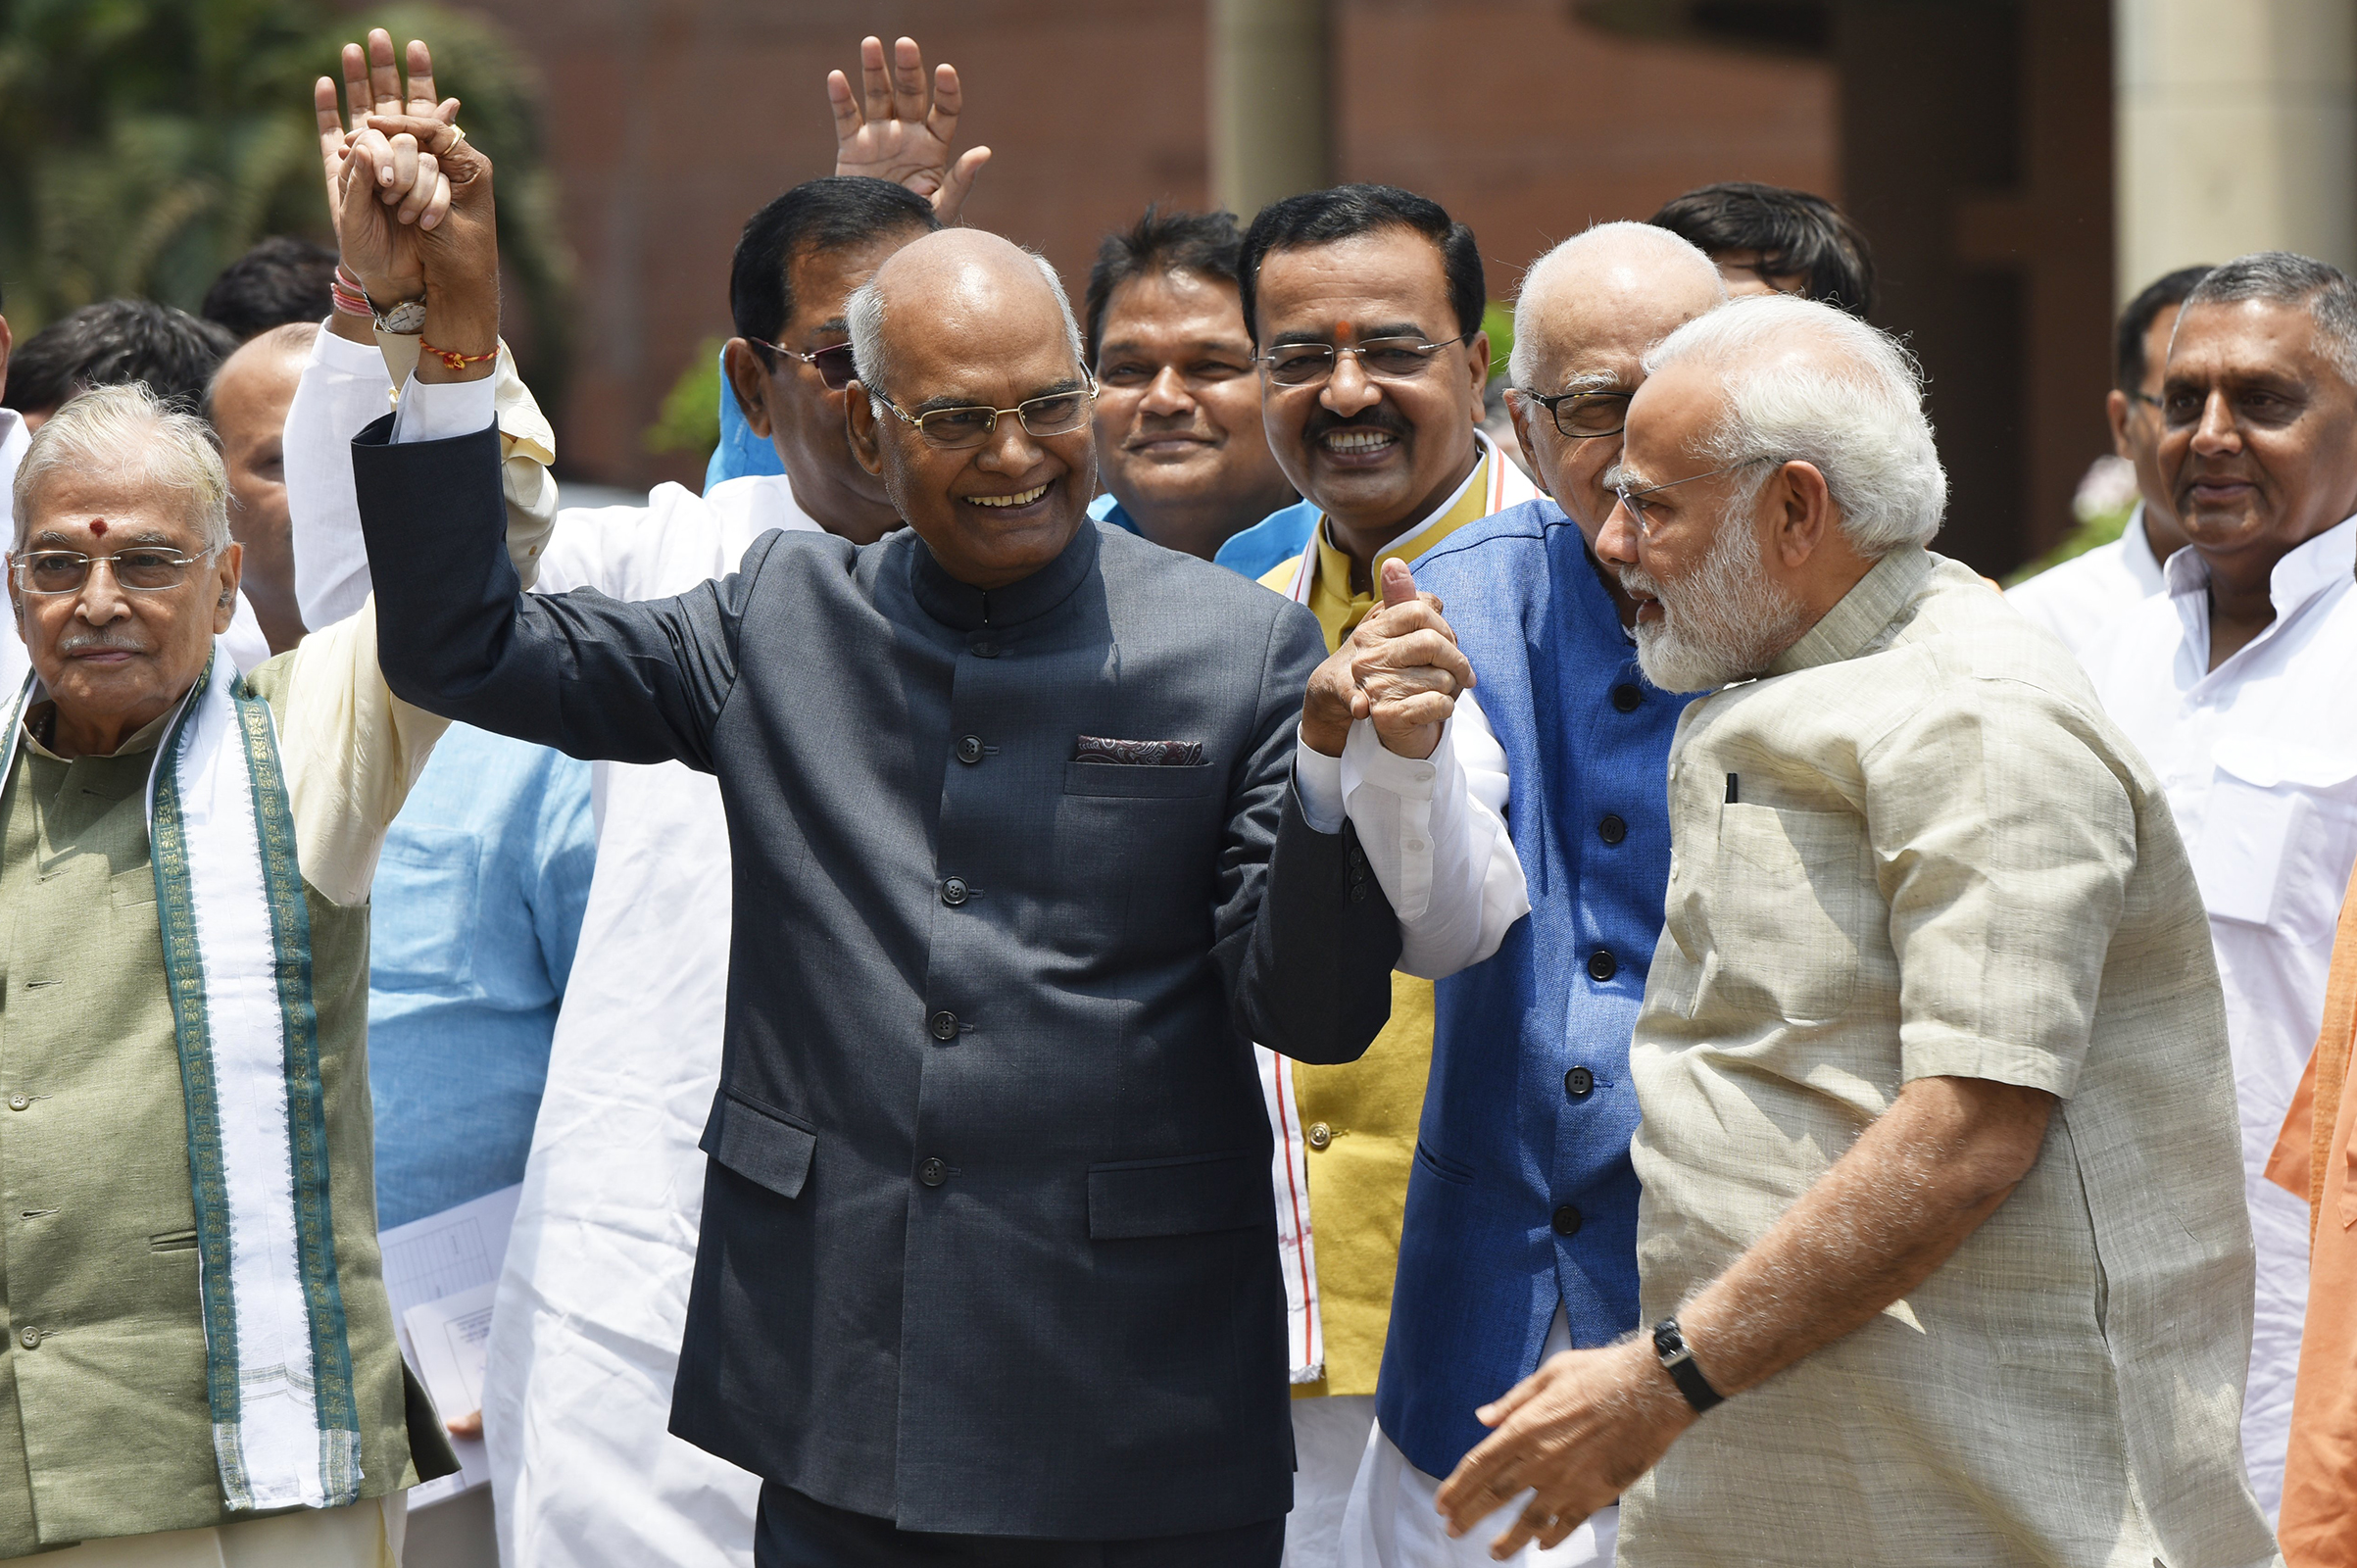 Ram Nath Kovind was due to be named the 14th President of India on July 20